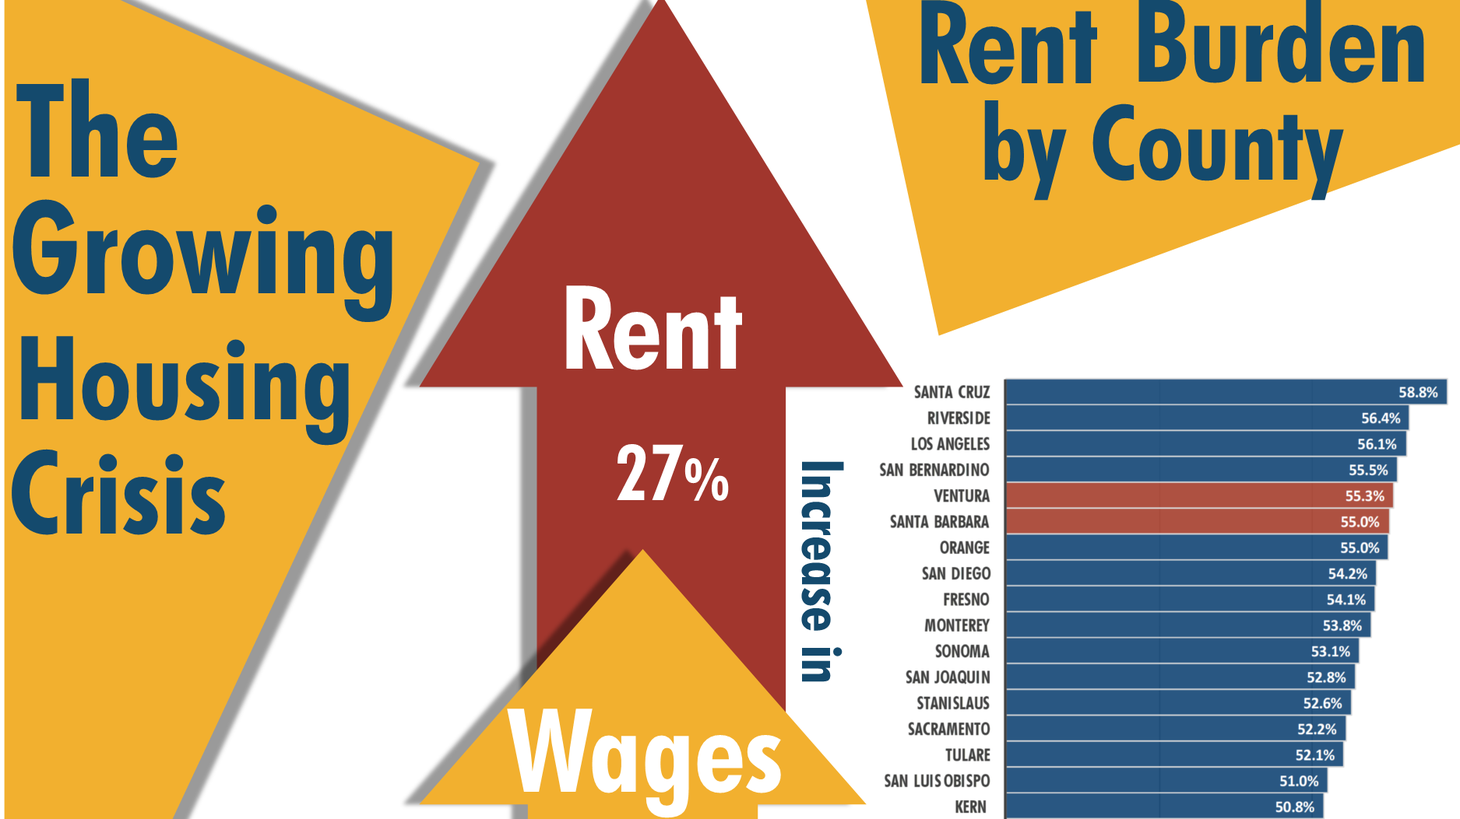 Ventura and Santa Barbara County have some of the highest levels of rent burden in the state, with 55% of renters paying over 30% of their income in housing costs.